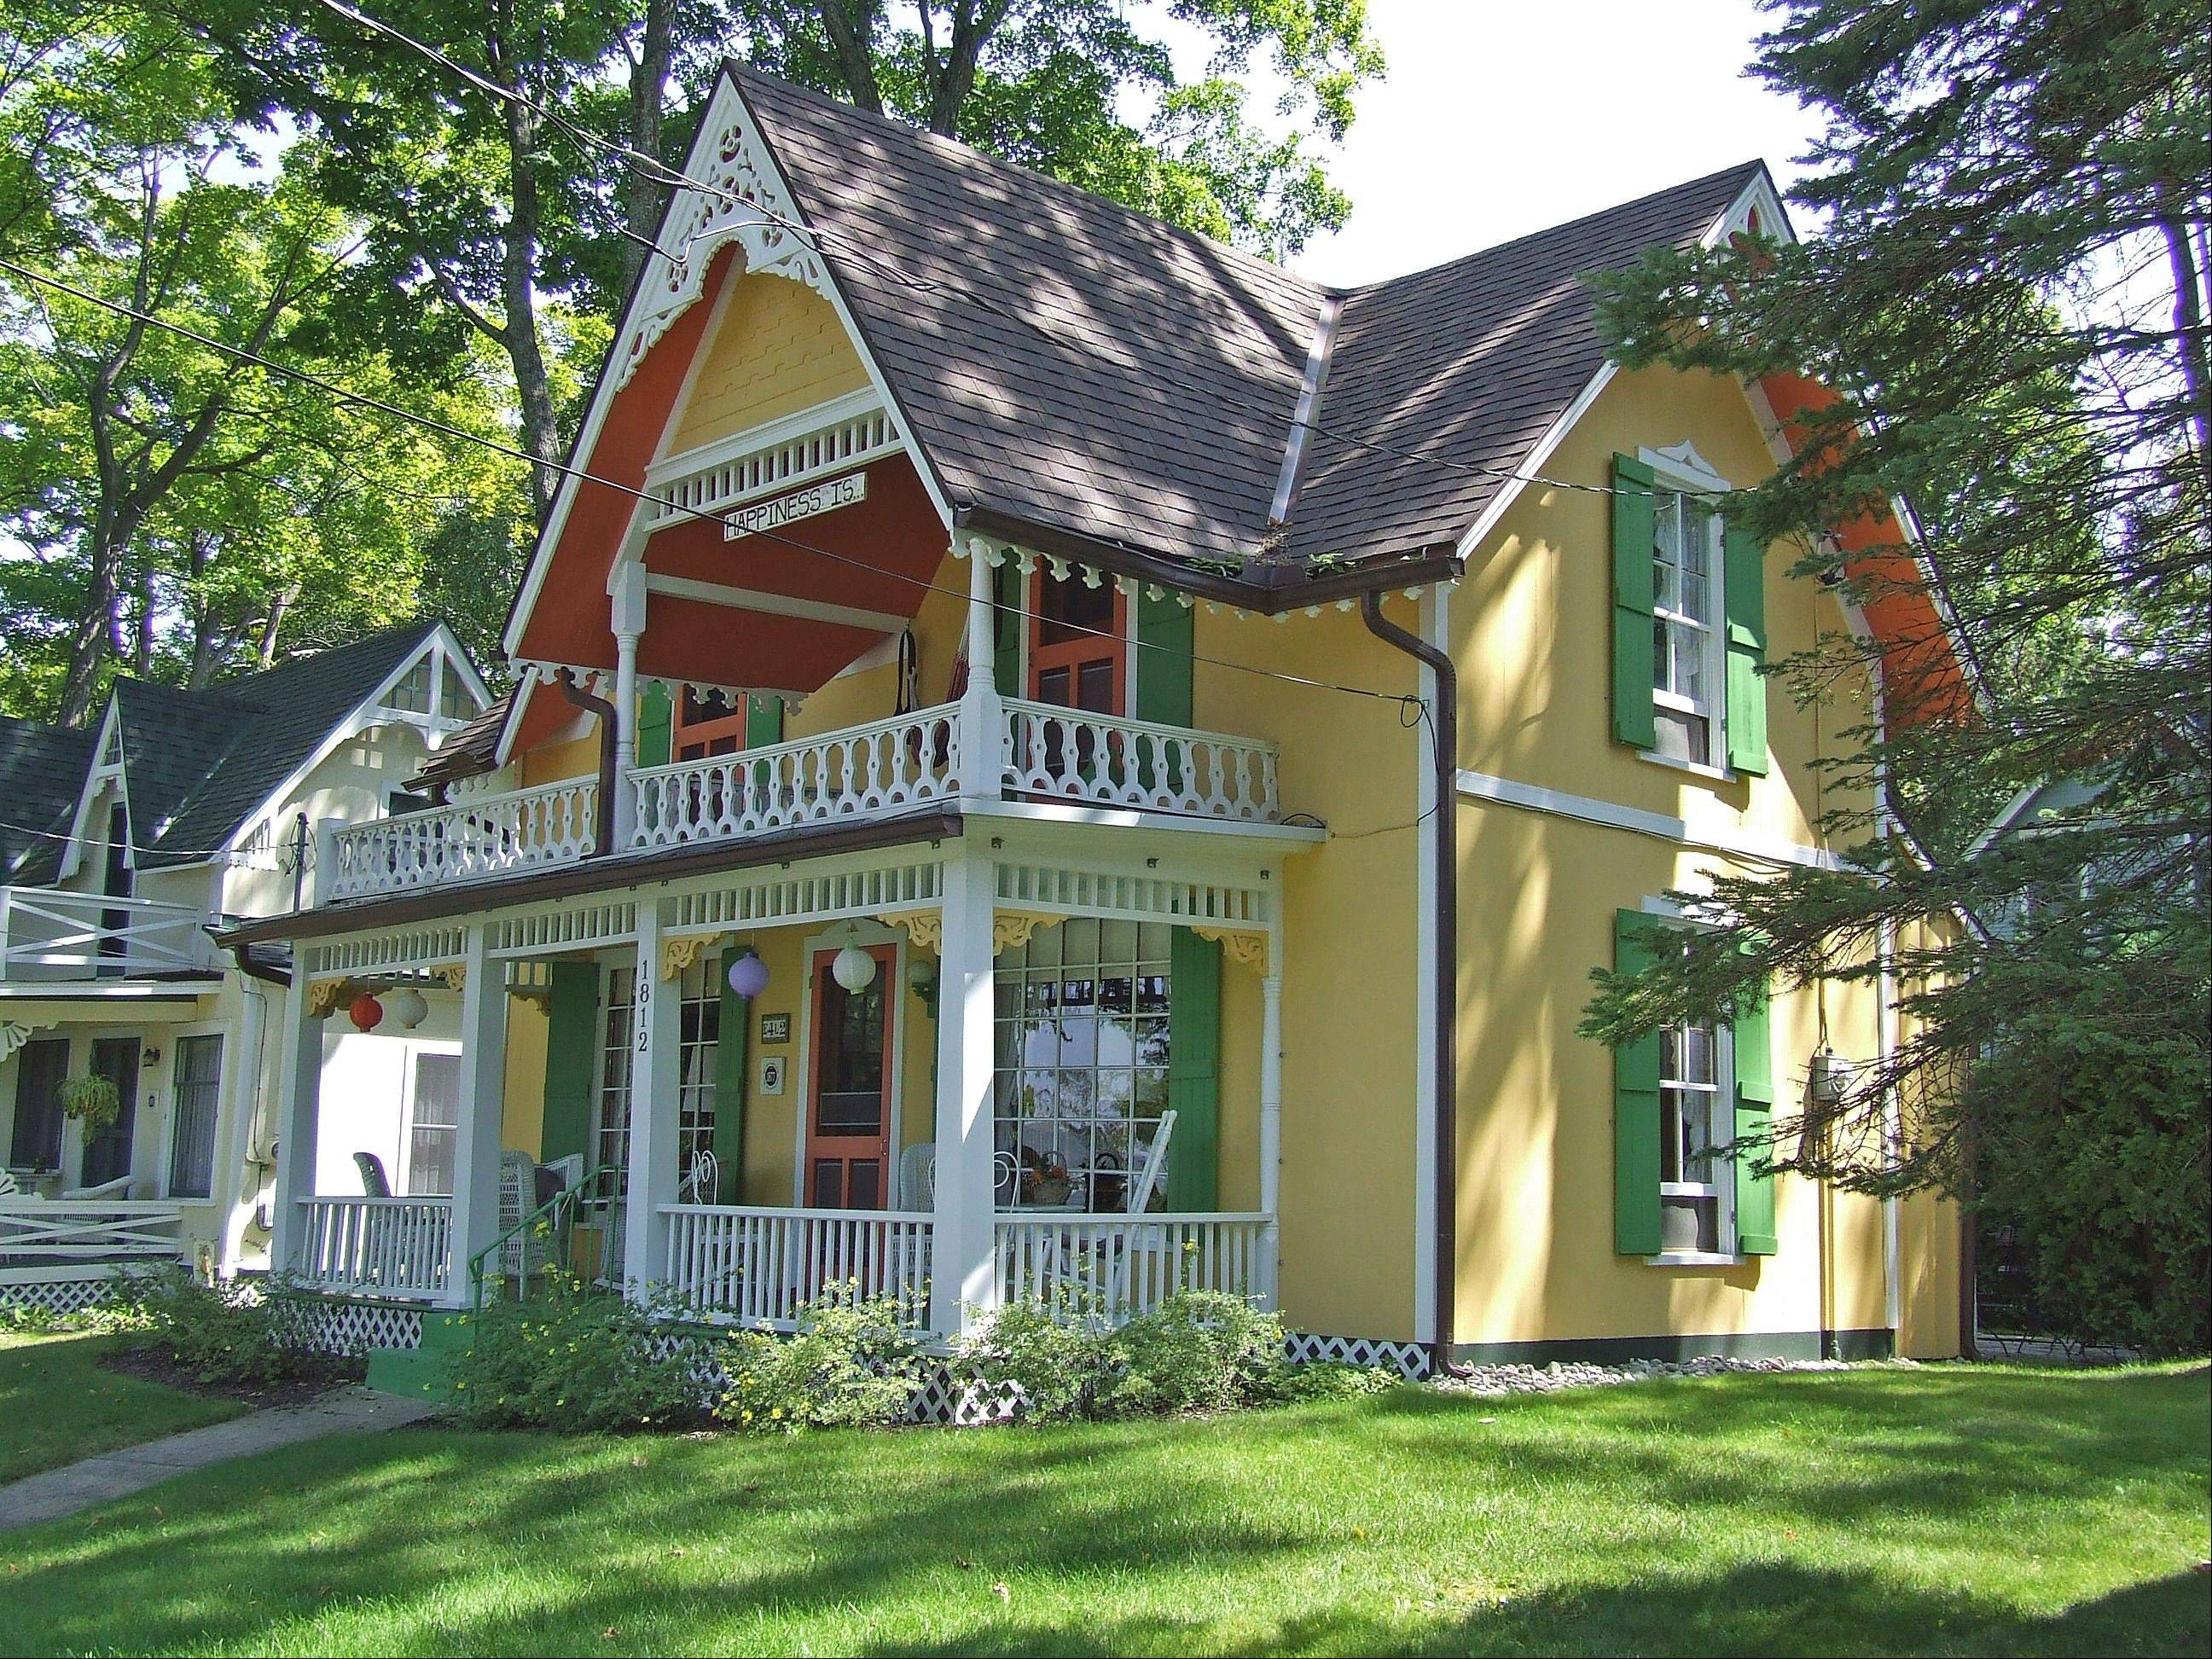 This cottage is in Bay View, Mich, a small unincorporated area that was founded in 1875 as a Methodist community.